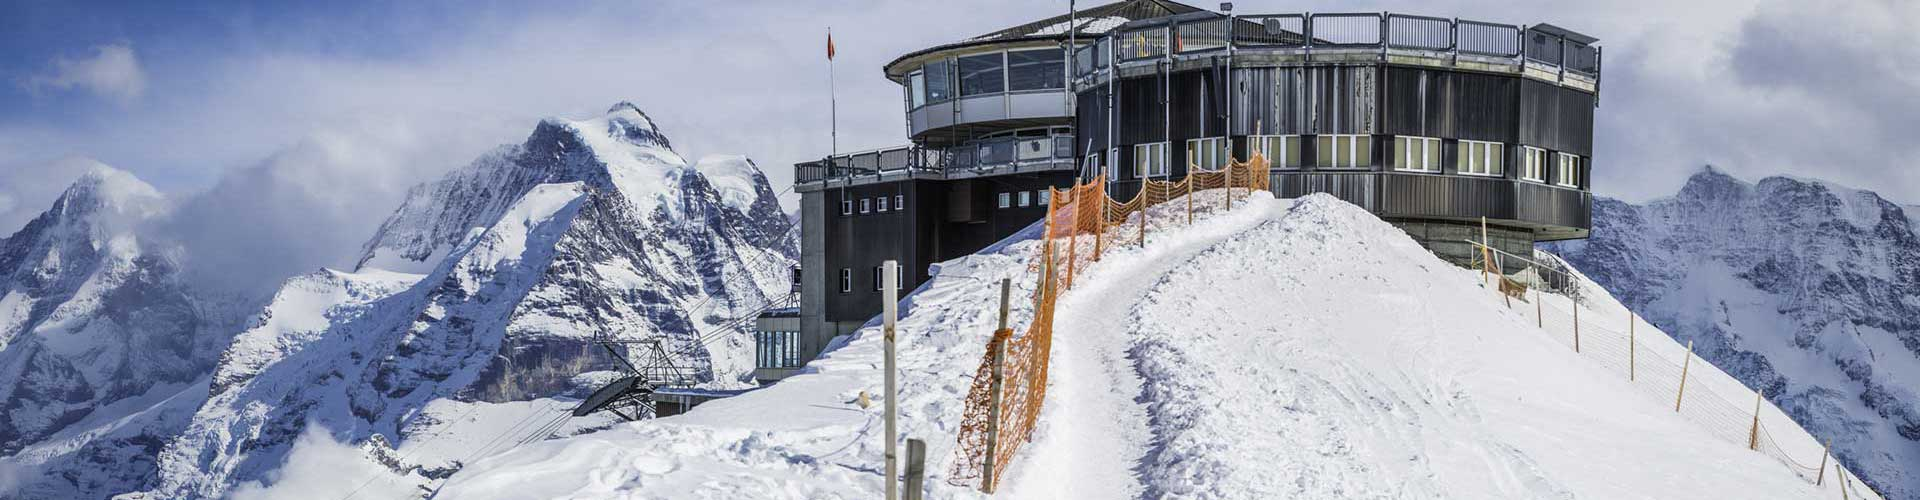 cable-car-station-switzerland-1920x500